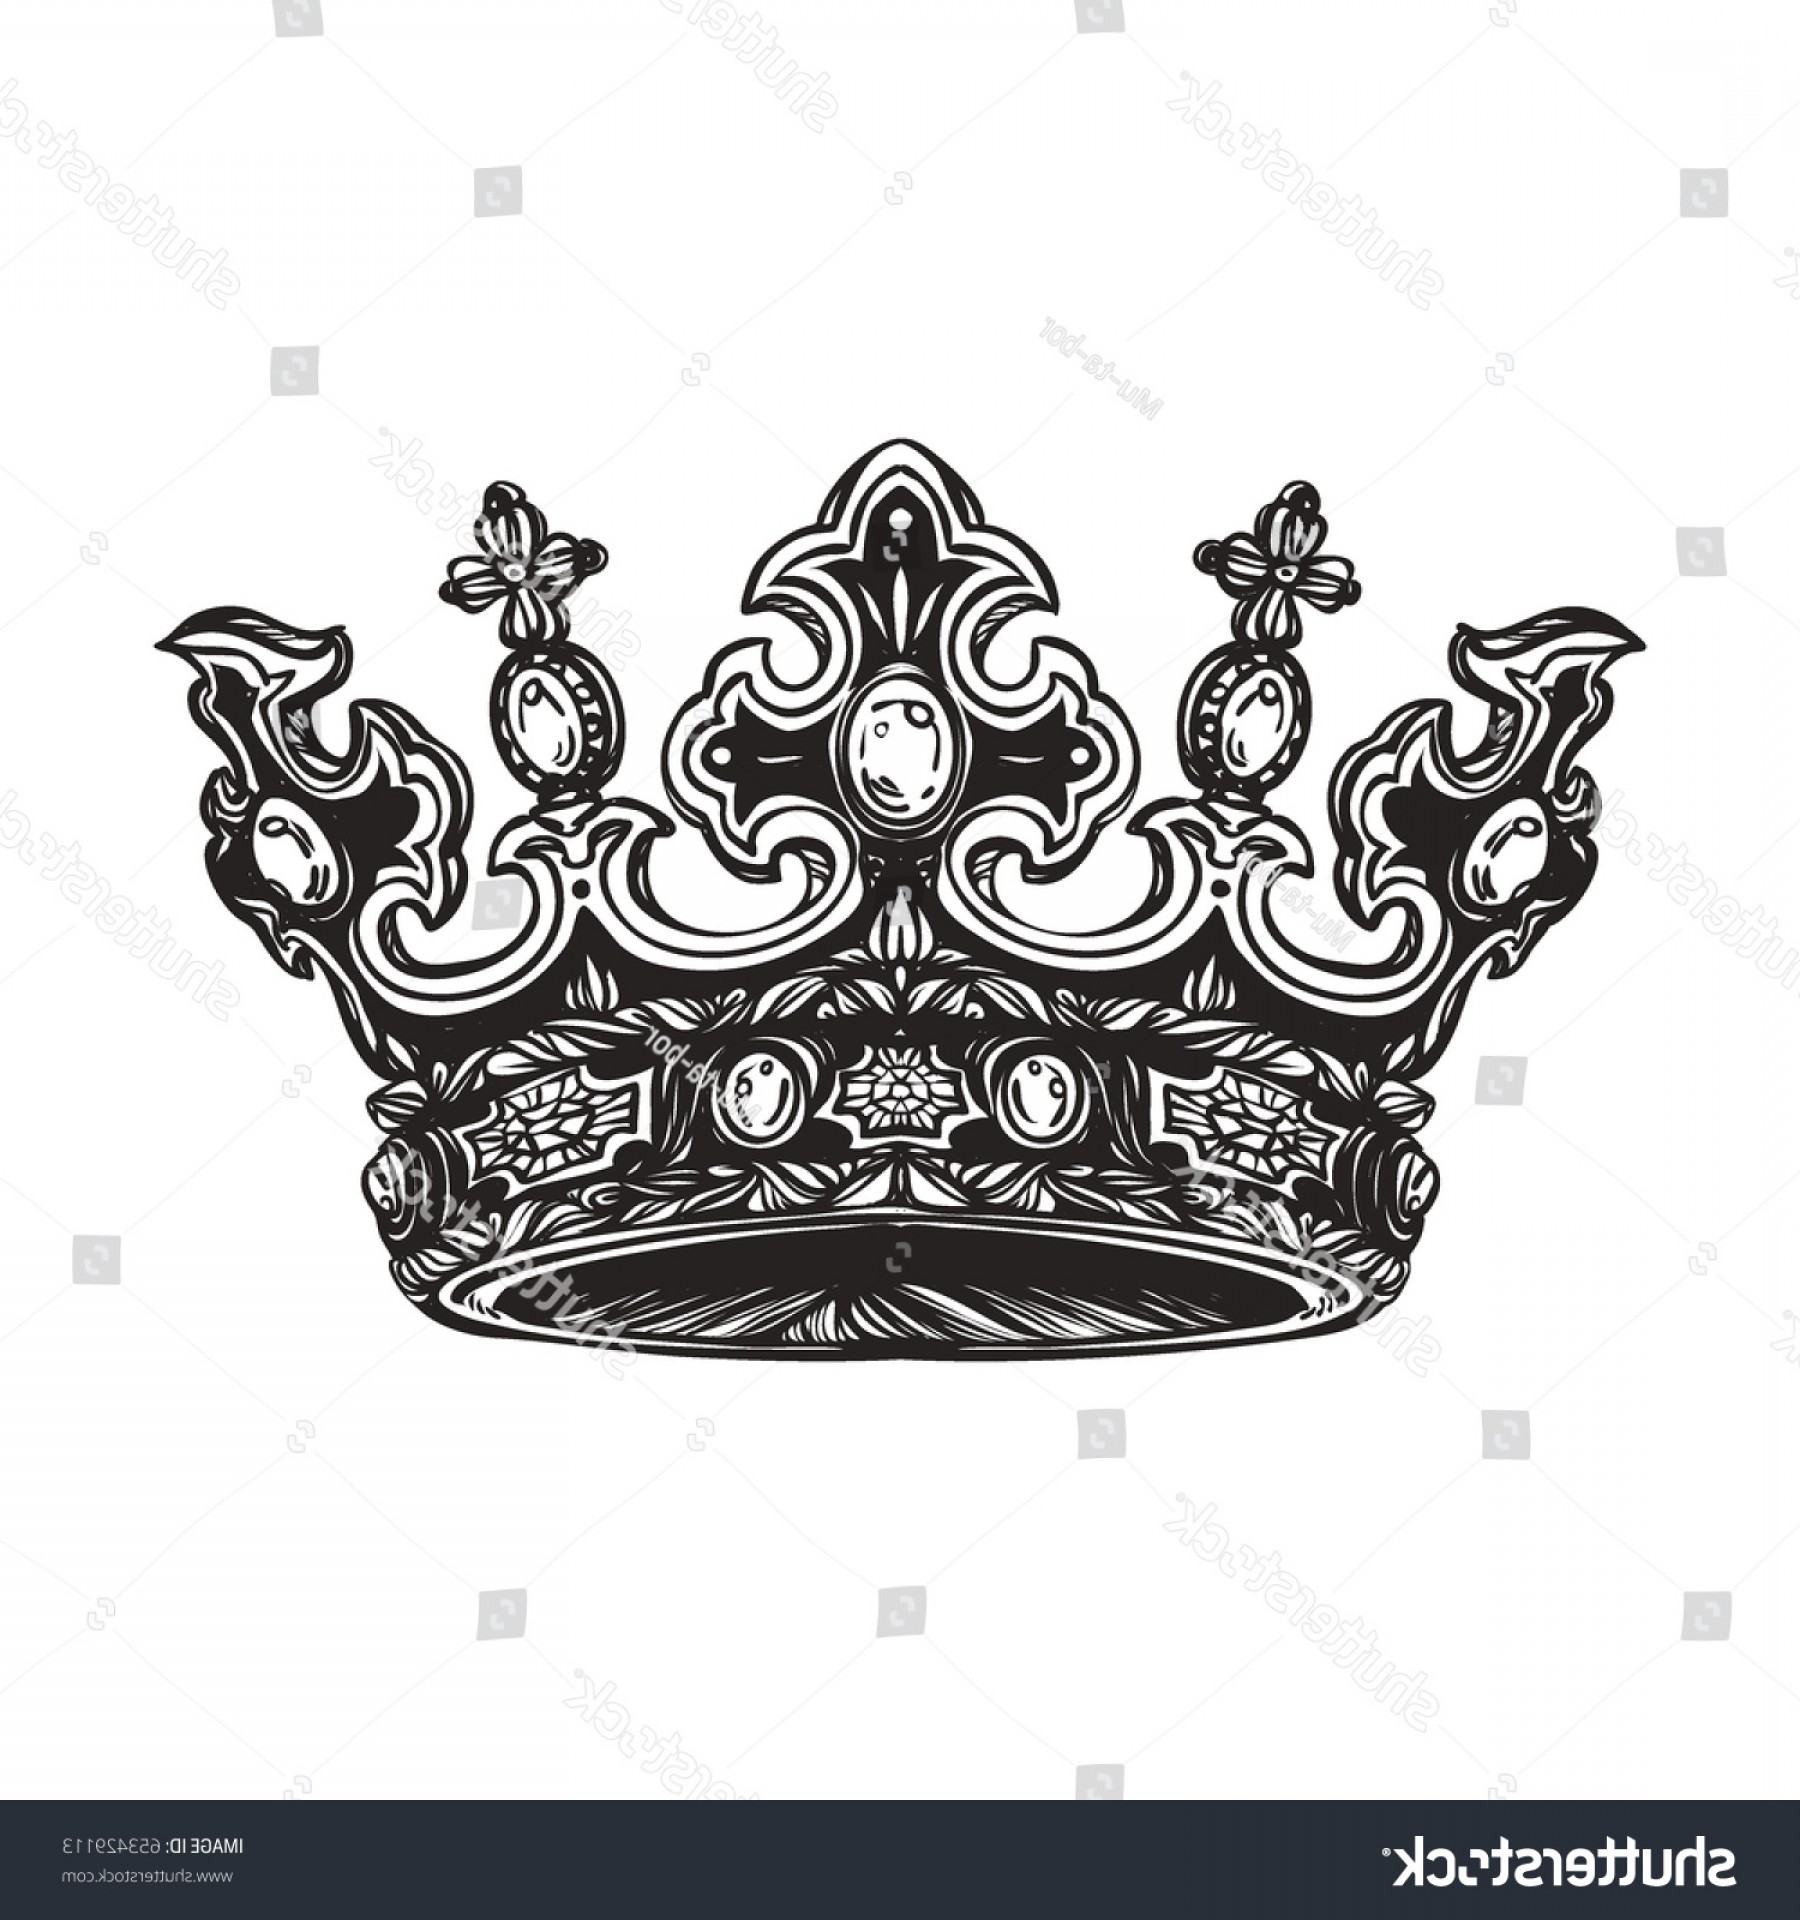 Detailed Tattoo Vector Images: Filigree High Detailed Imperial Crown Element